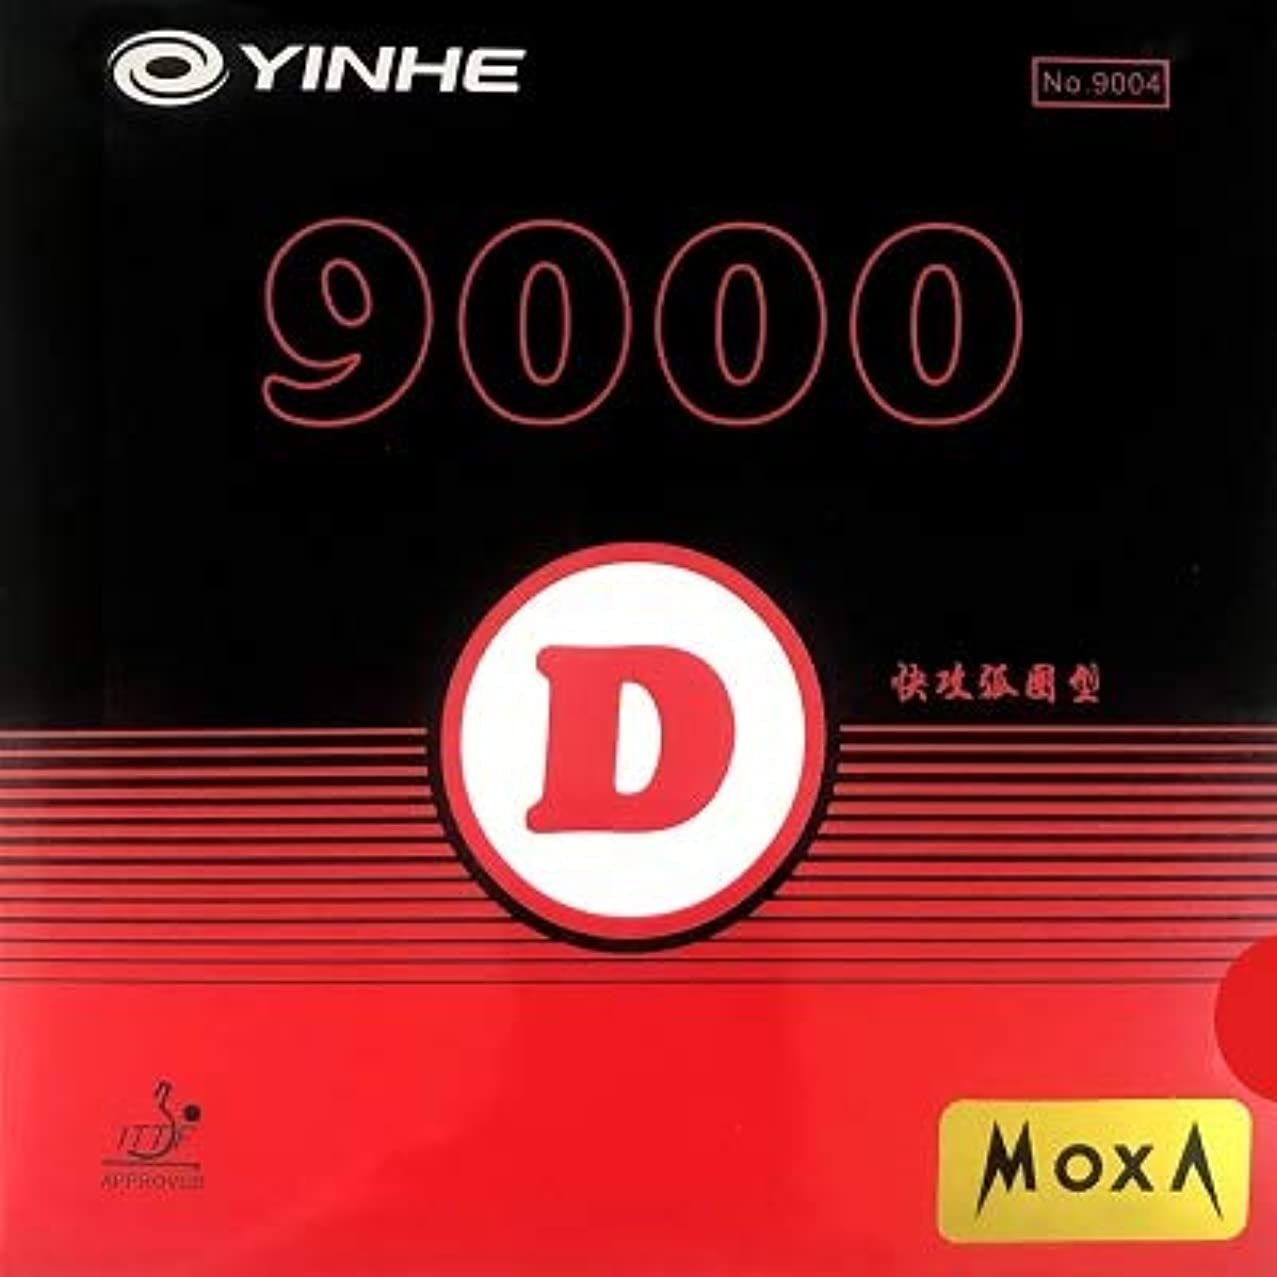 YINHE 9000D Pips in Table Tennis Rubber Sheet